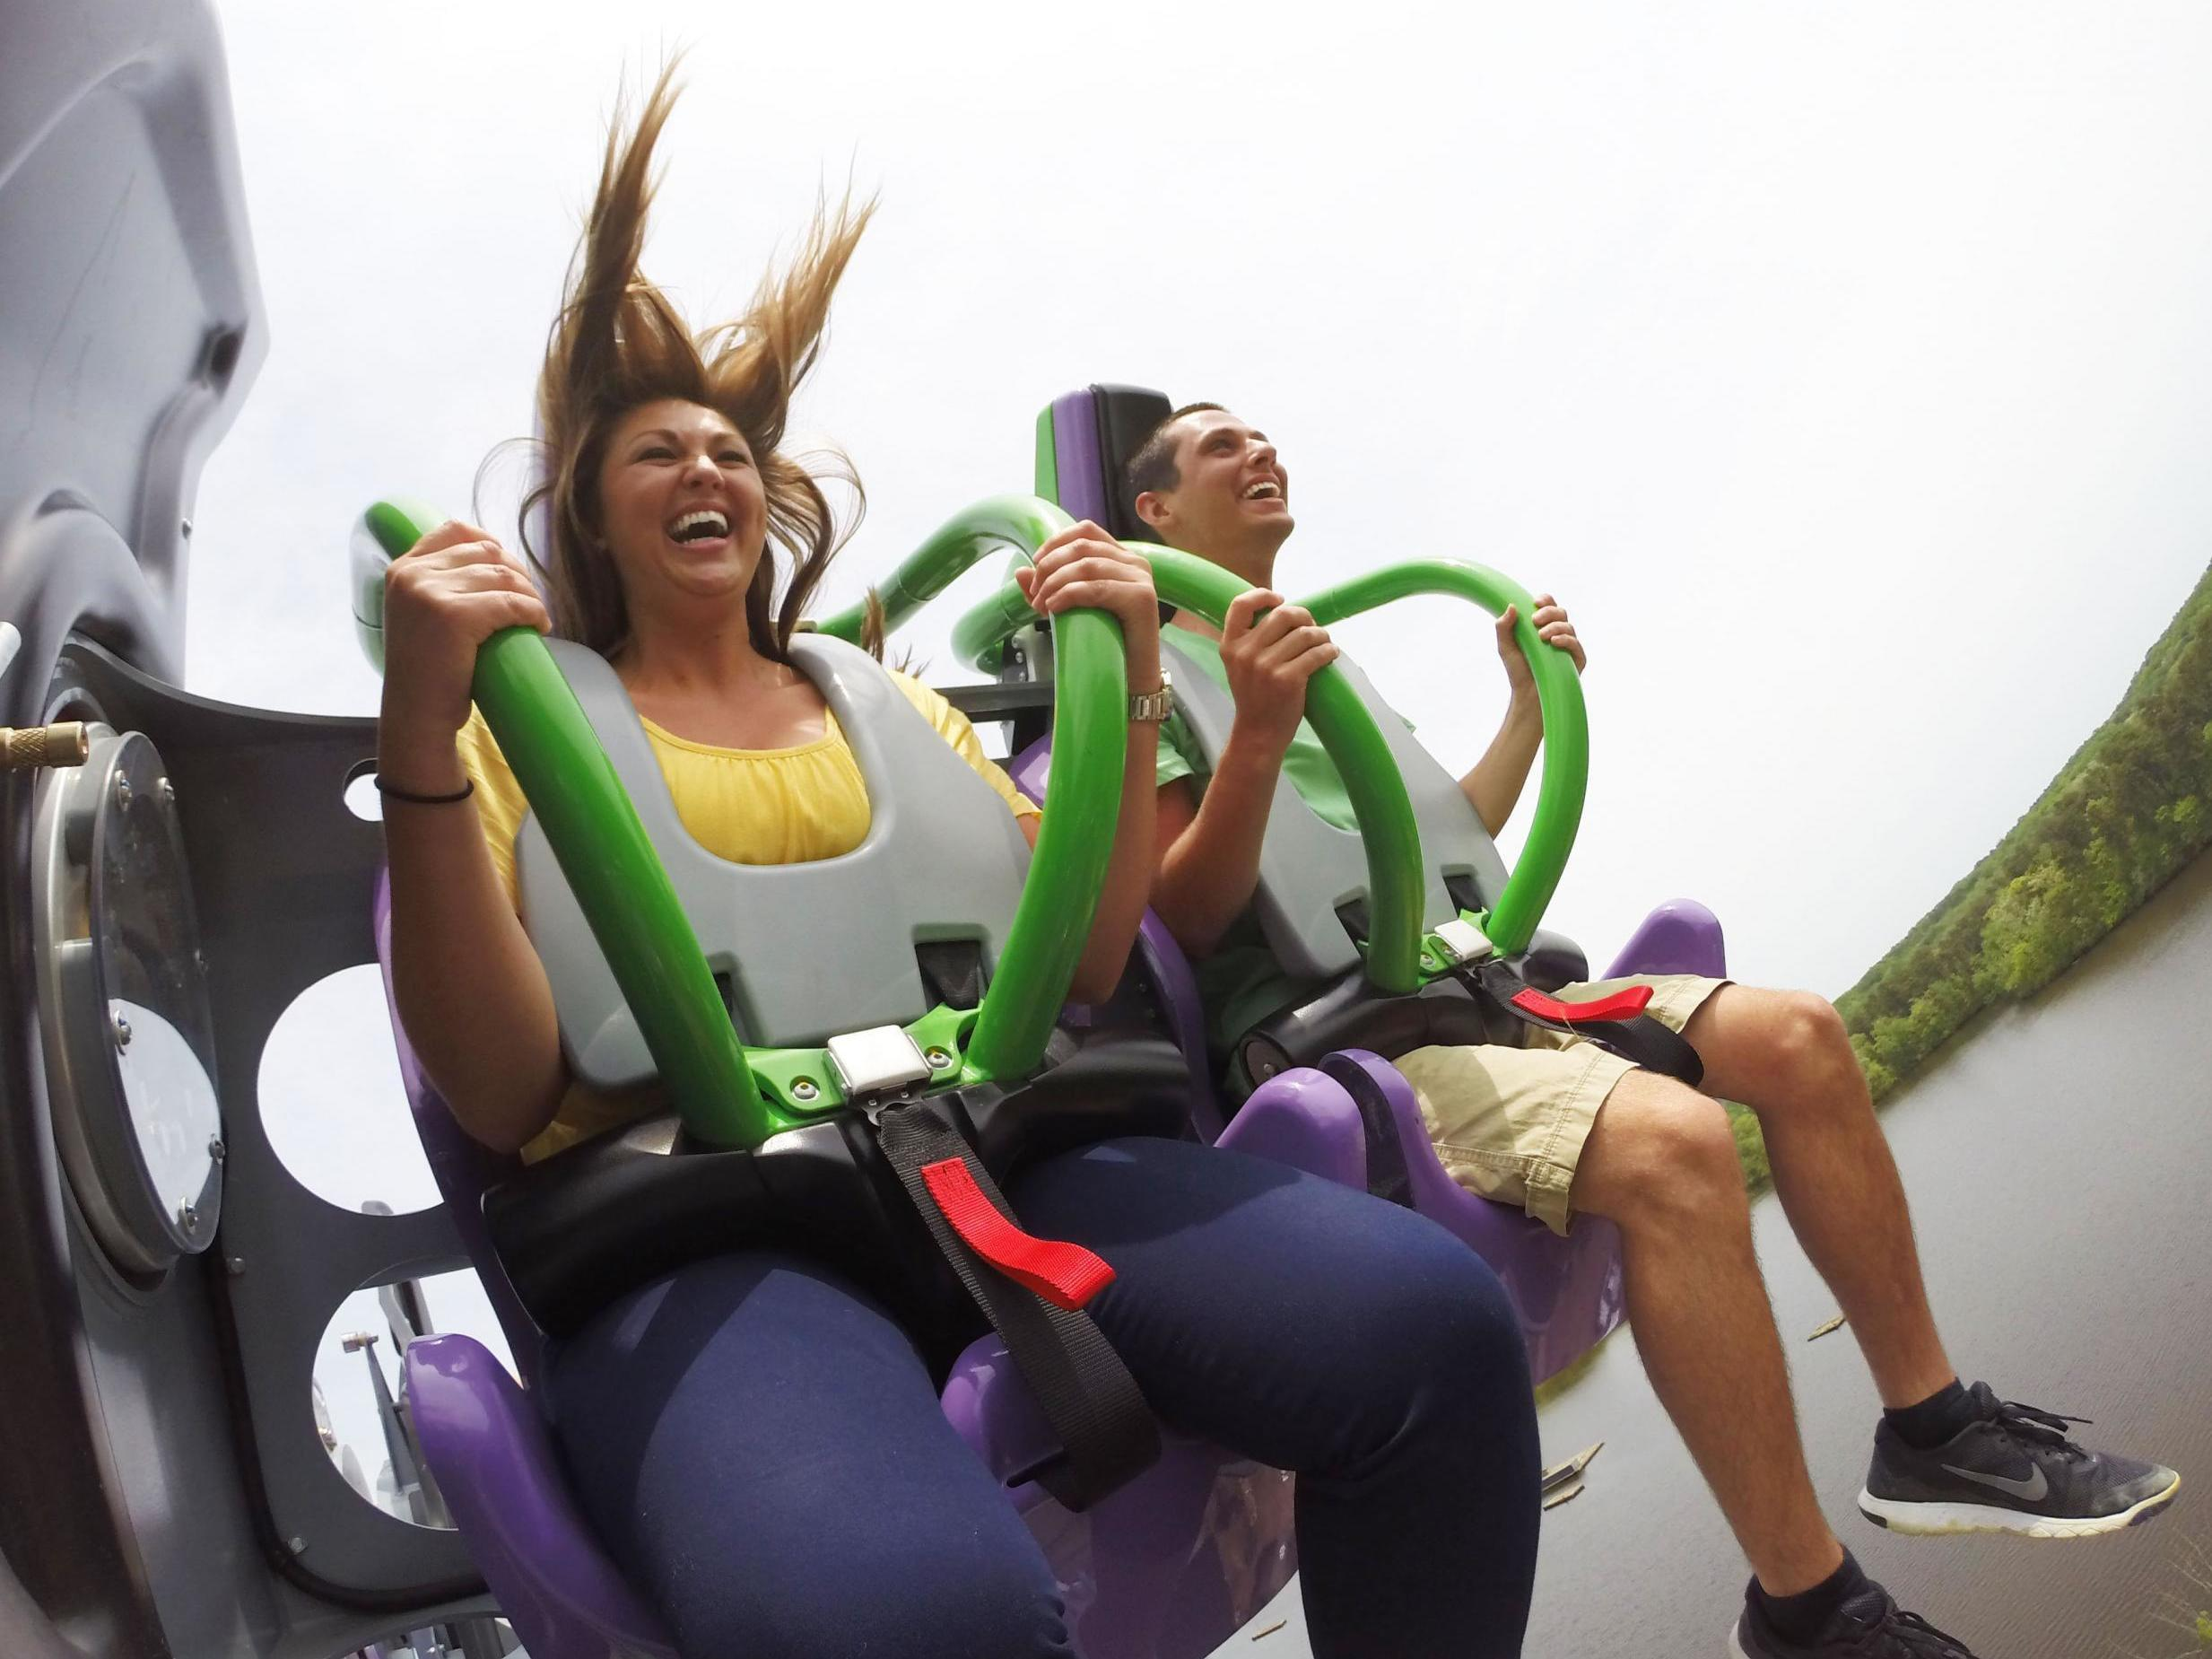 Rollercoasters can cure kidney stones, scientists learn